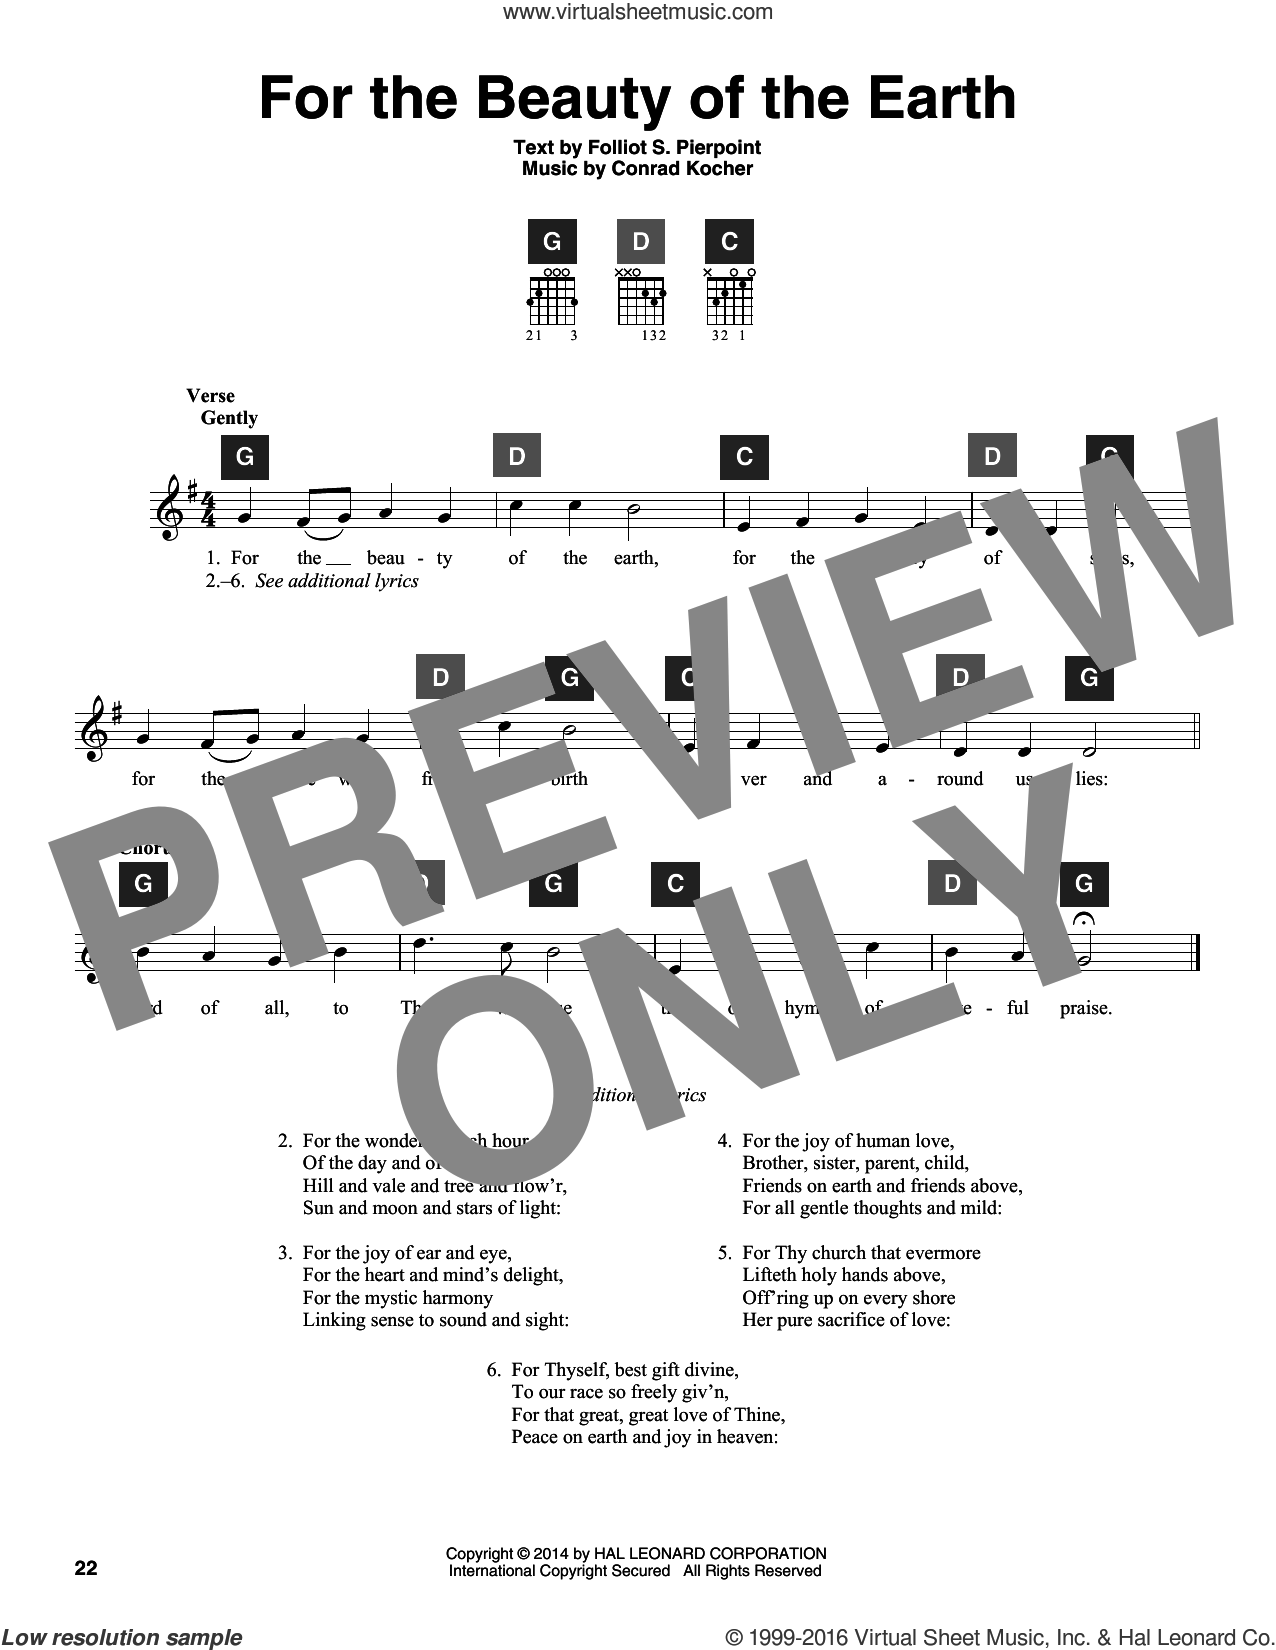 For The Beauty Of The Earth sheet music for guitar solo (ChordBuddy system) by Folliot S. Pierpoint and Conrad Kocher. Score Image Preview.